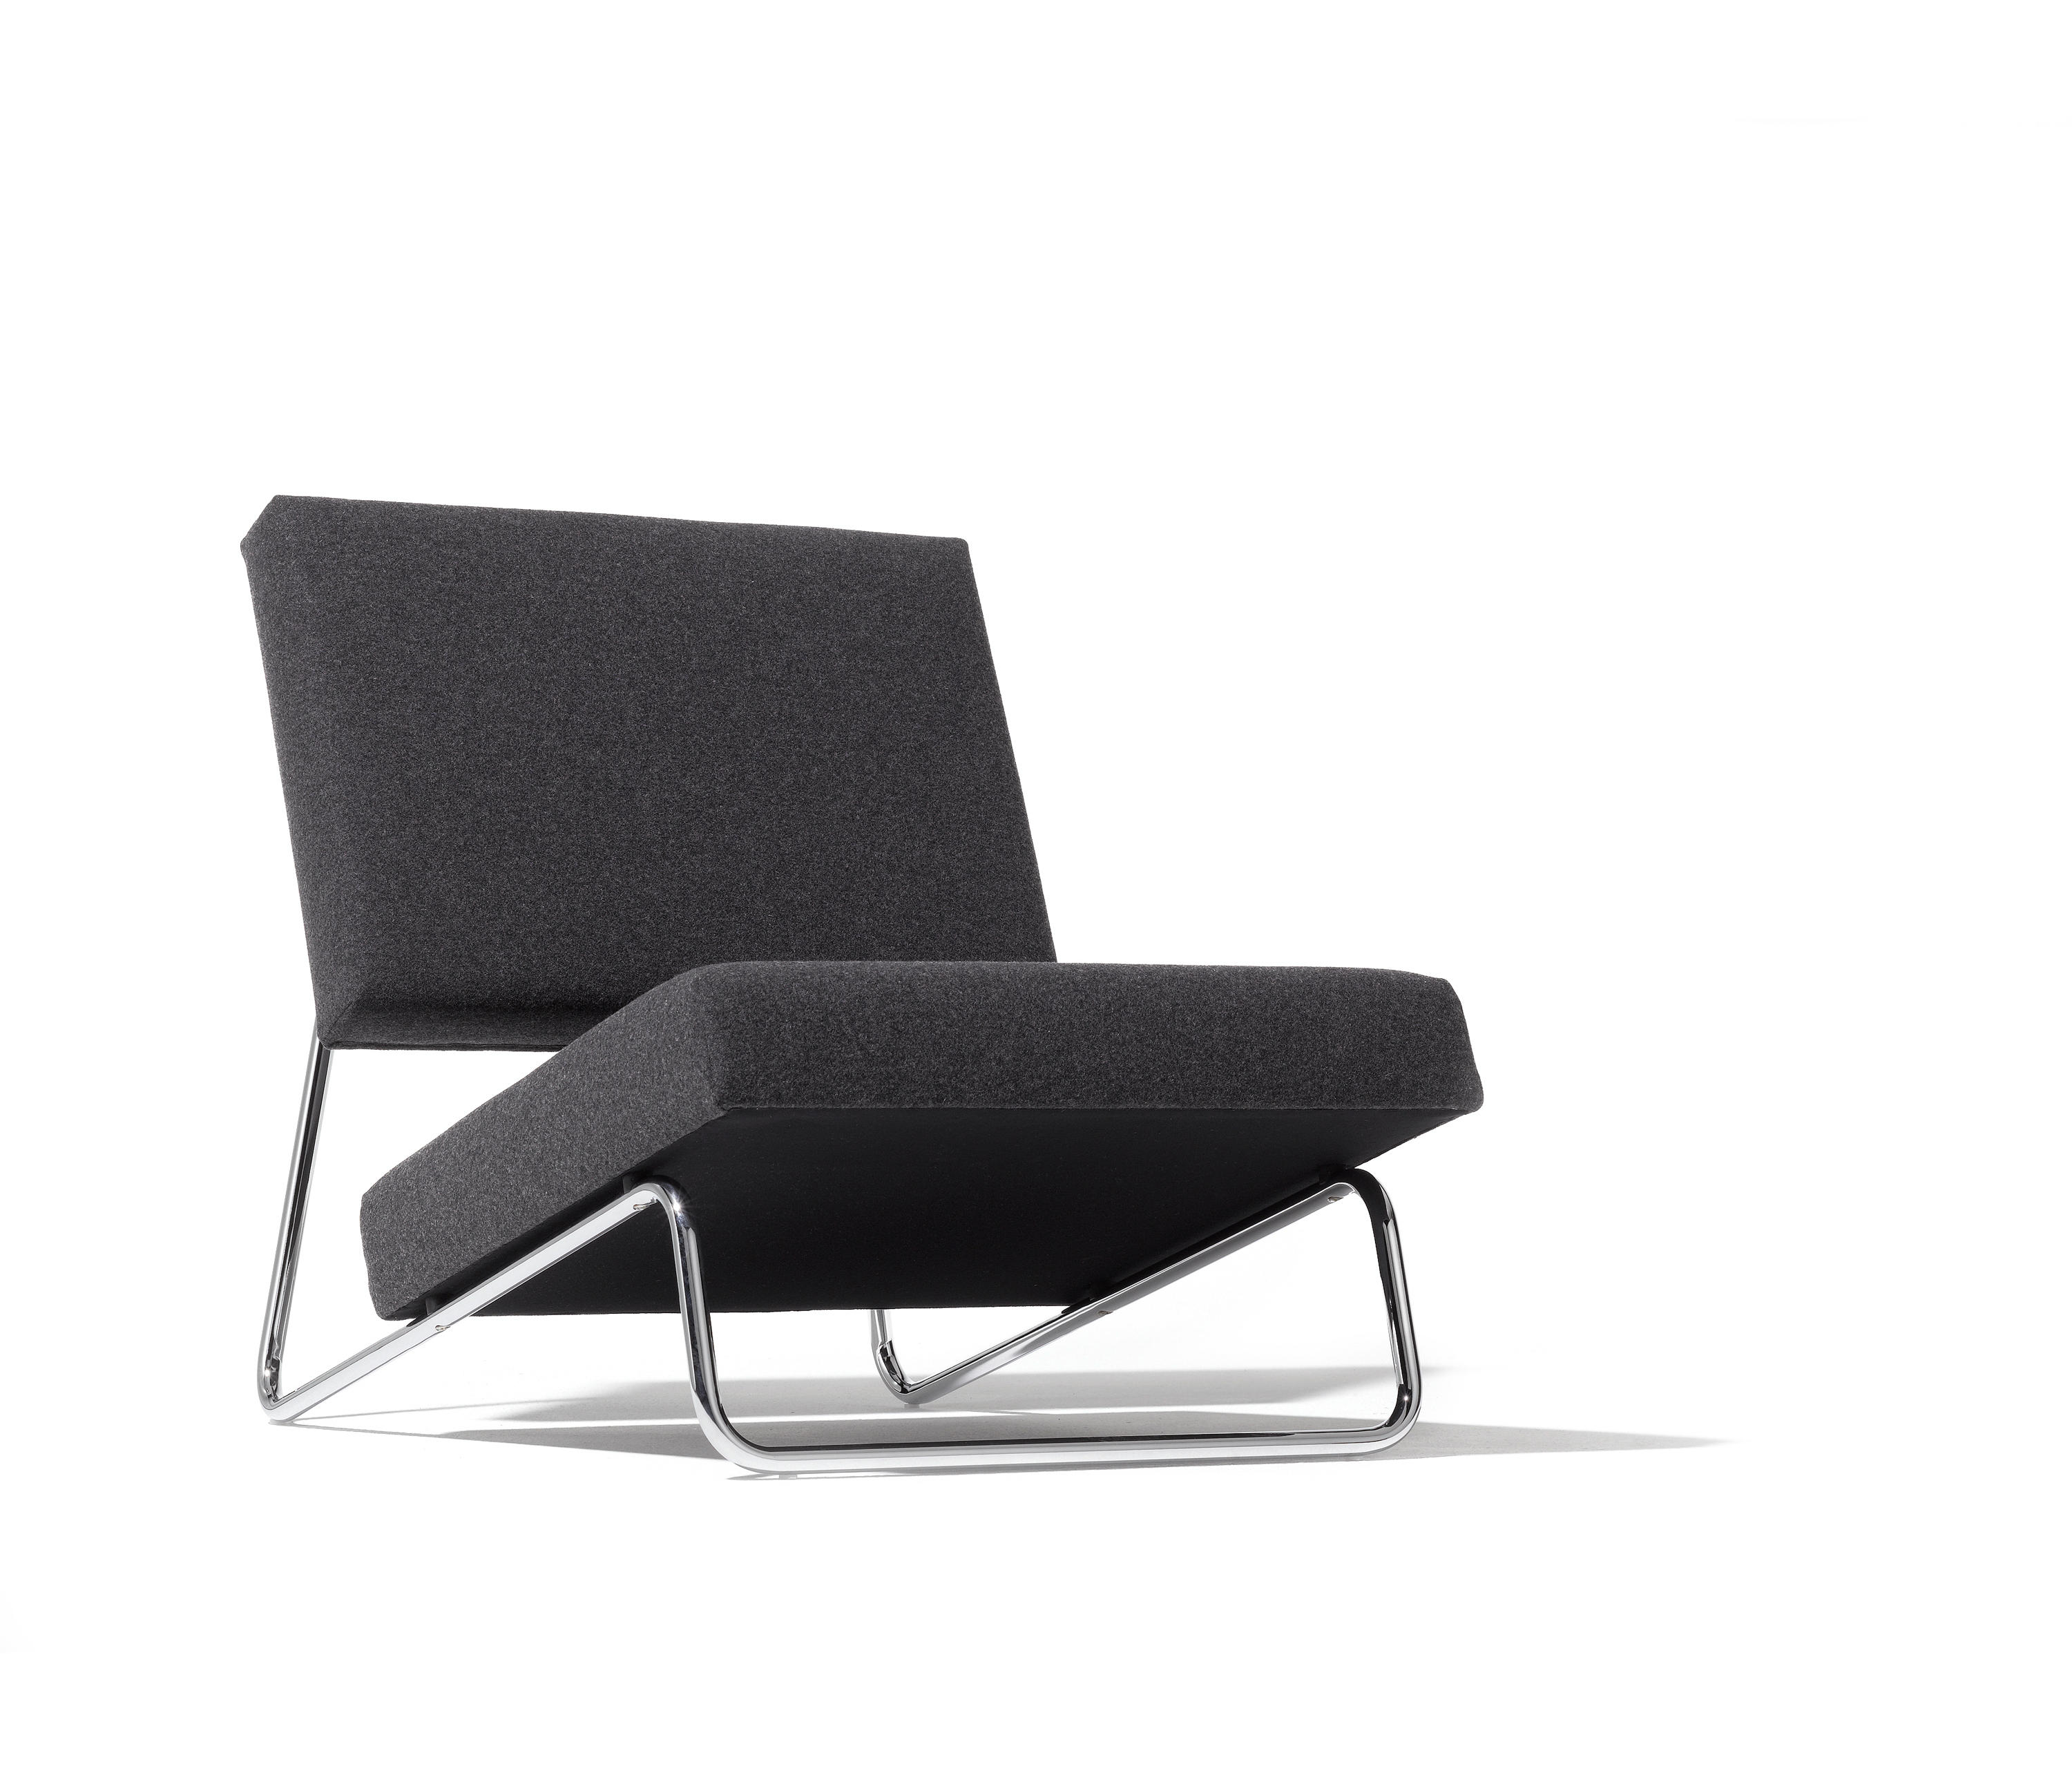 lounge chair hirche sillones de richard lampert architonic. Black Bedroom Furniture Sets. Home Design Ideas